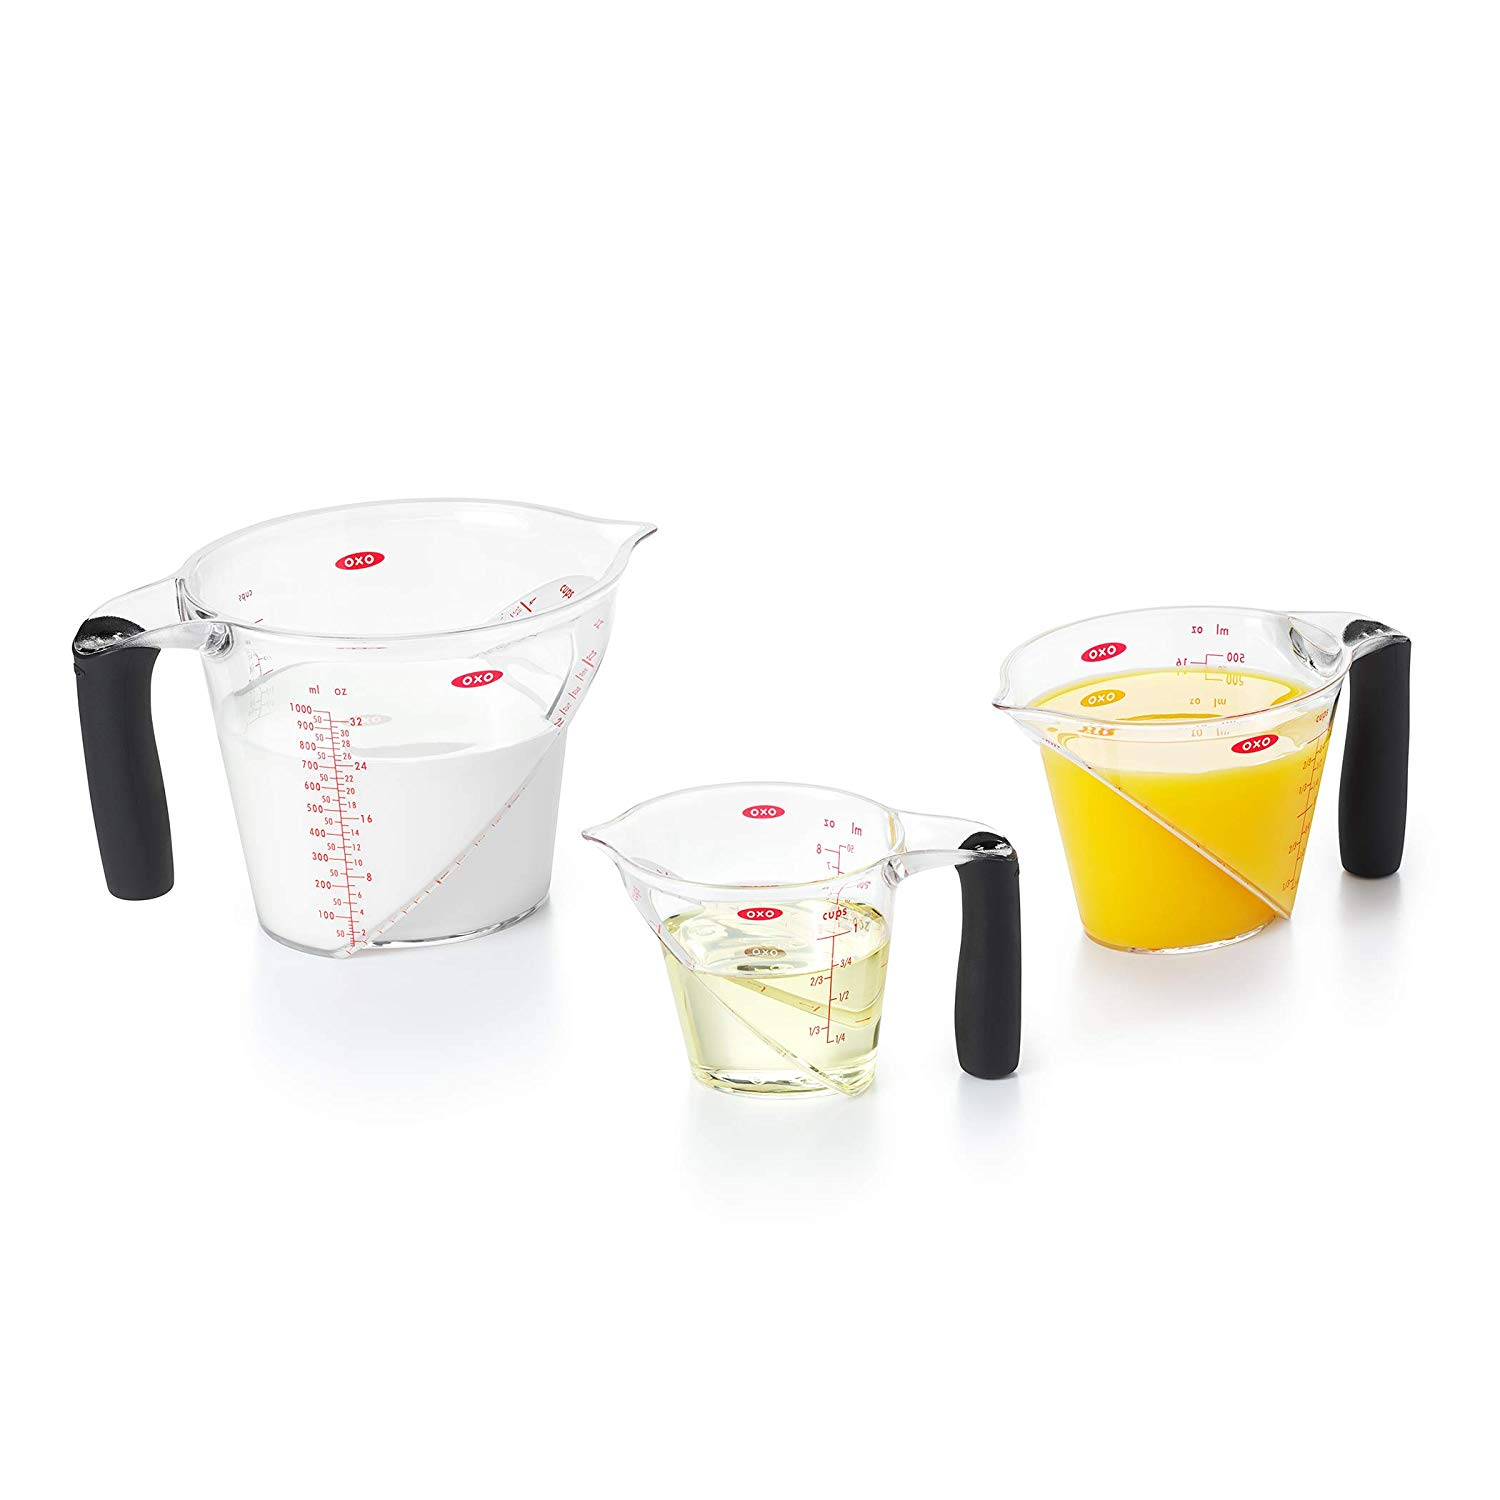 OXO Good Grips Angled Measuring Cup Set, 3-Piece